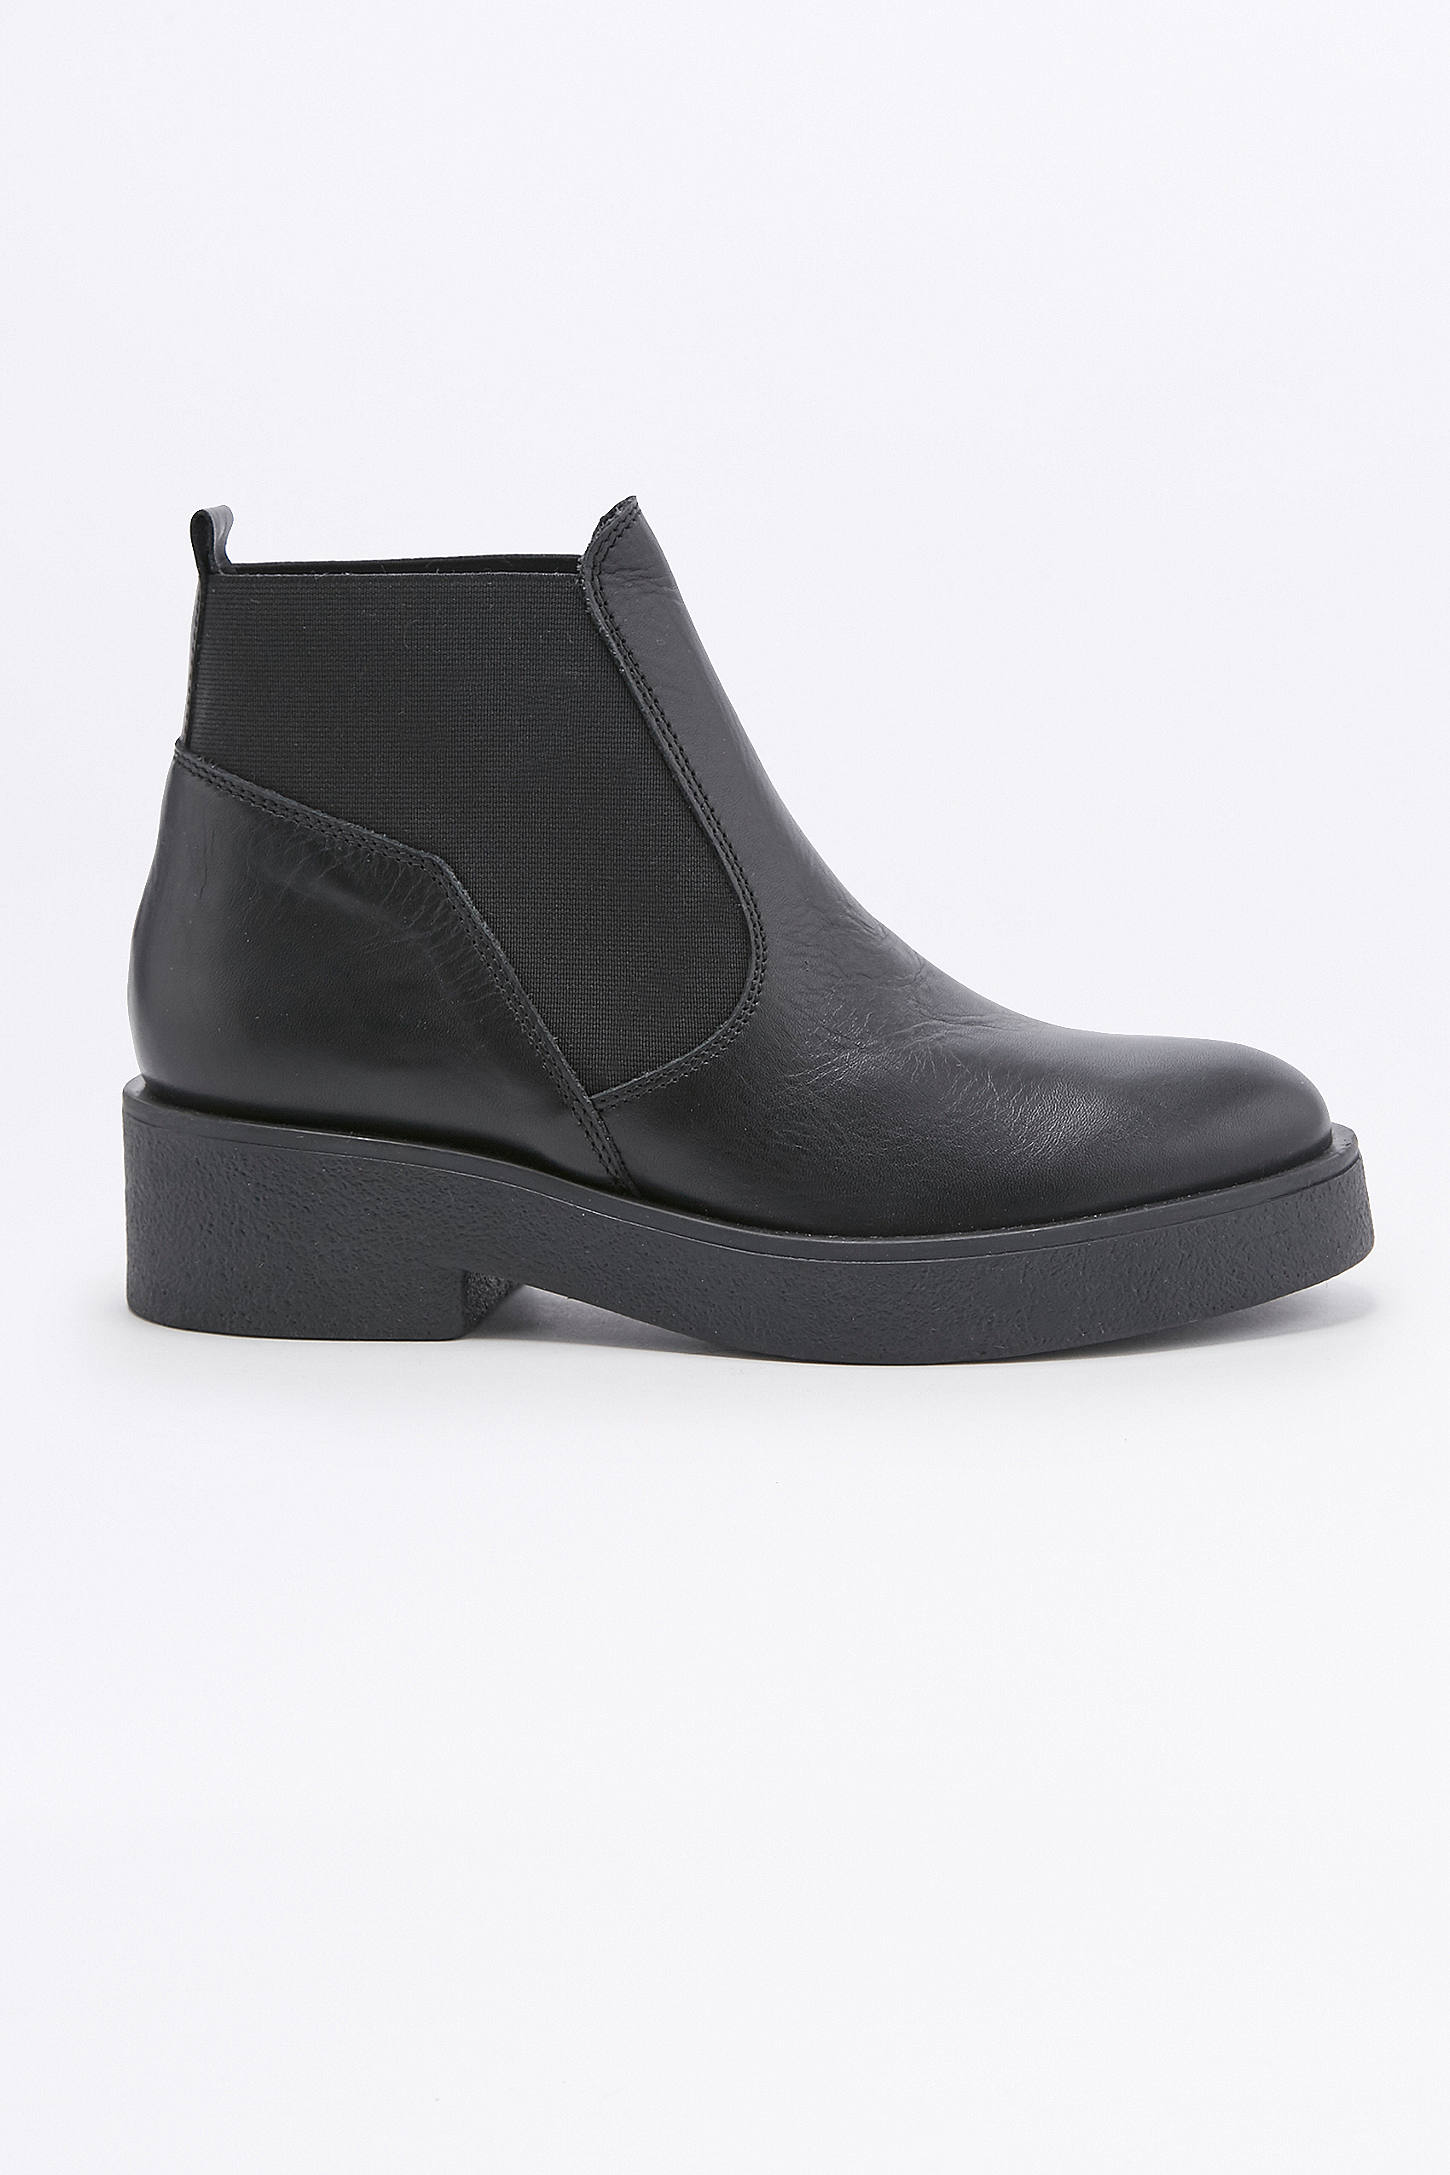 Nicola Black Leather Chelsea Ankle Boots | Urban Outfitters